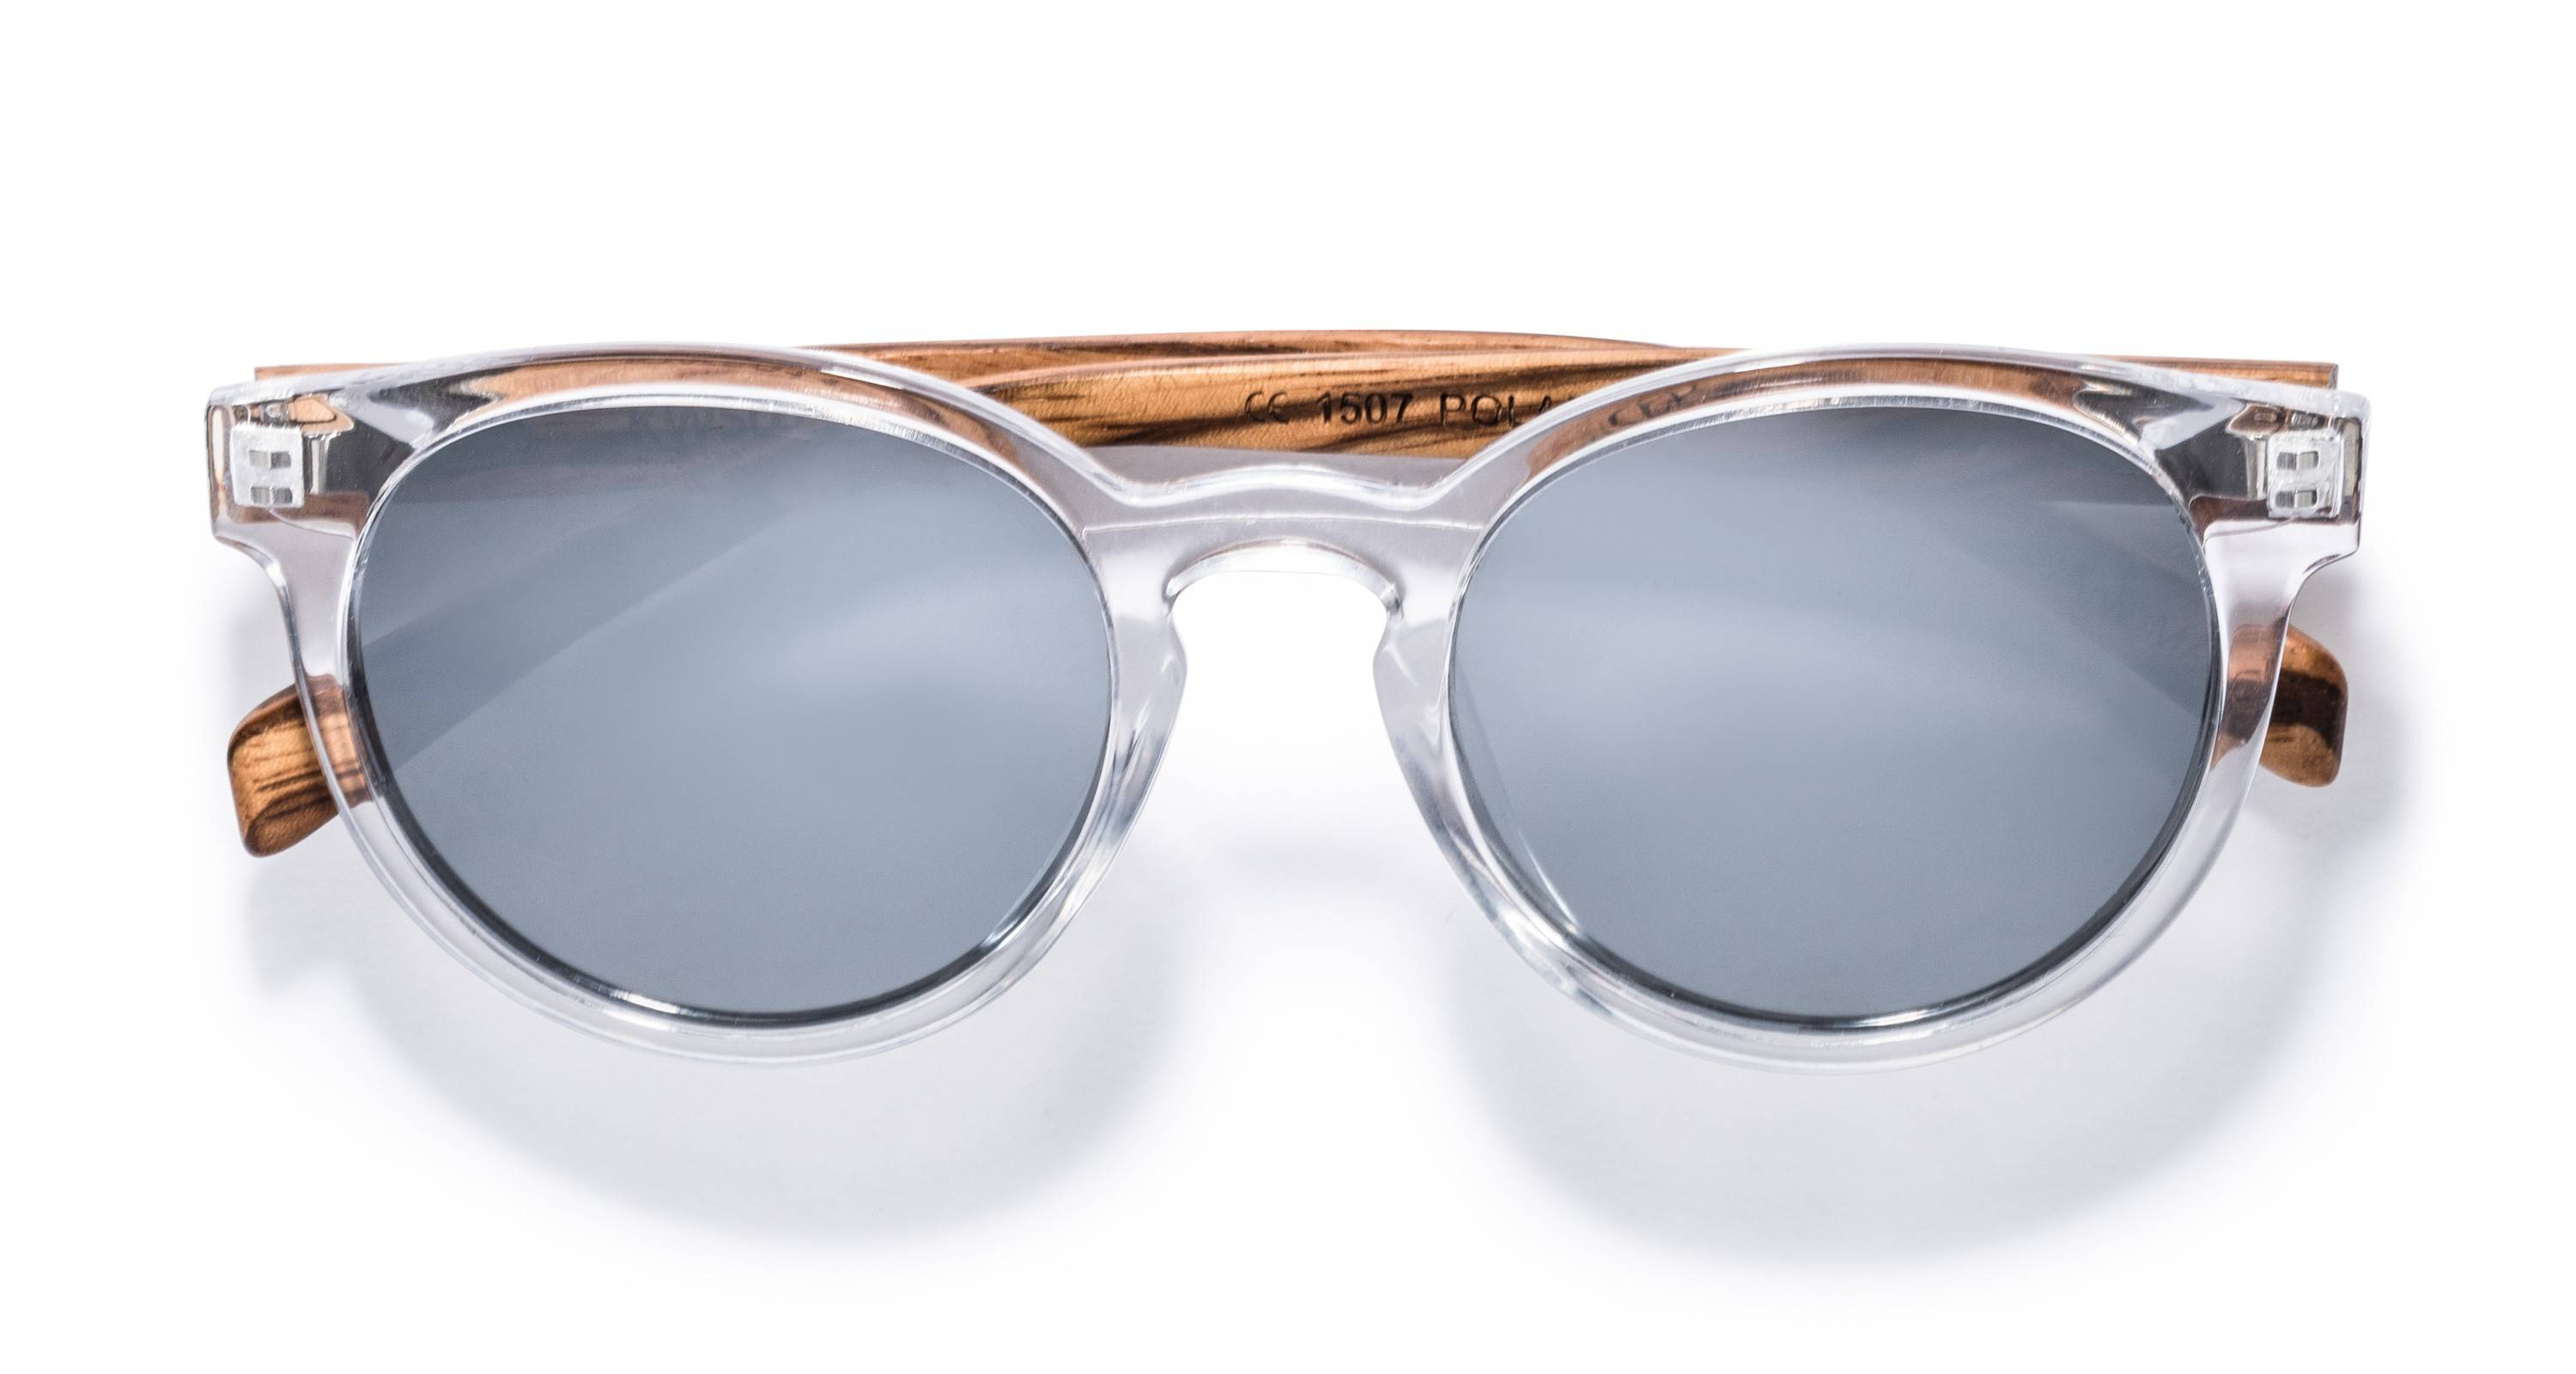 Kraywoods Groove, reflective round Sunglasses made from Zebra wood with polarized mirrored lenses